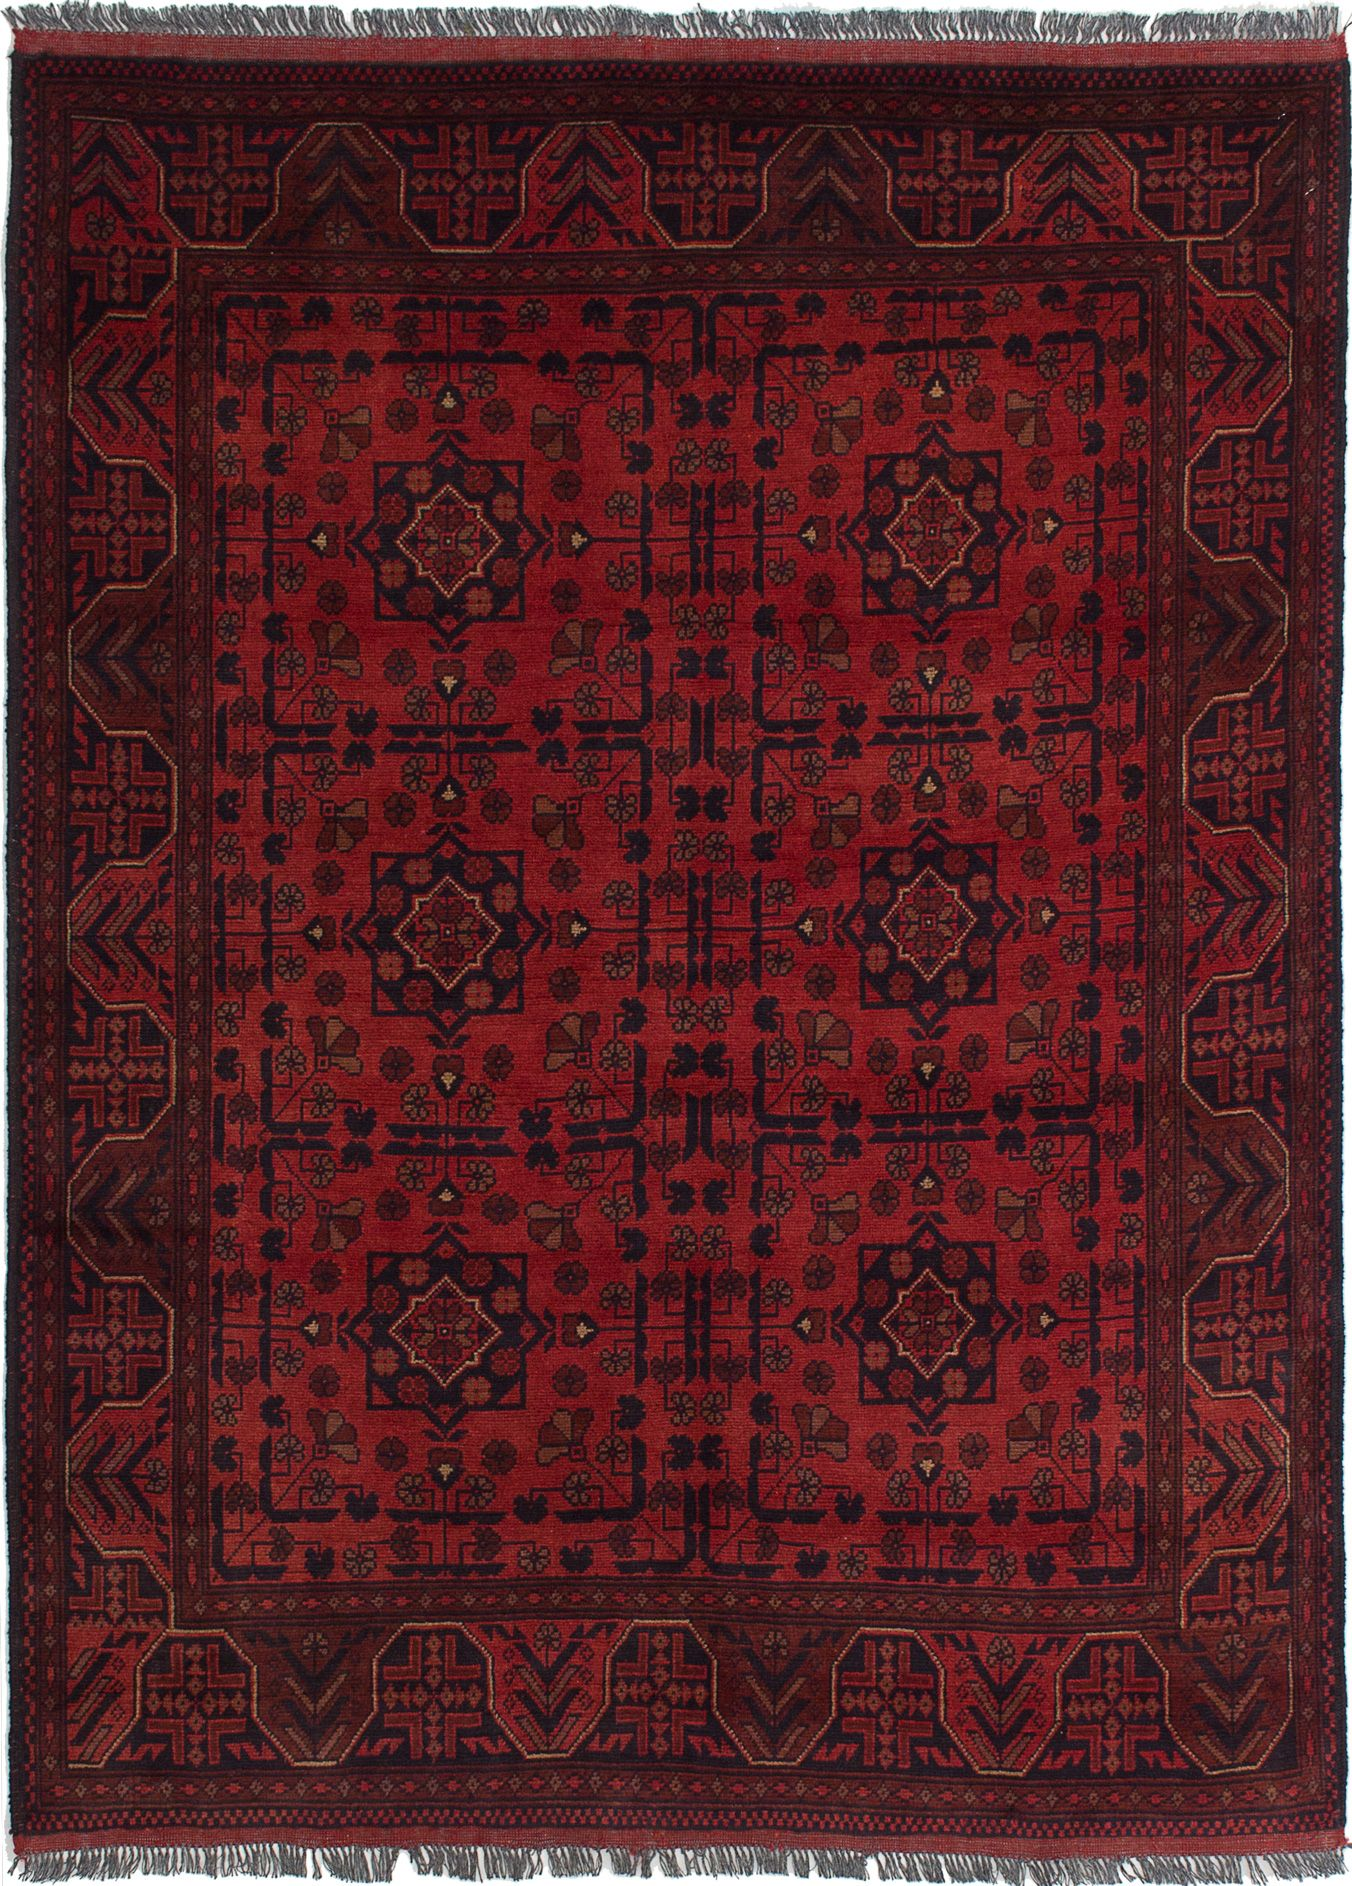 """Hand-knotted Finest Khal Mohammadi Red Wool Rug 4'11"""" x 6'10""""  Size: 4'11"""" x 6'10"""""""